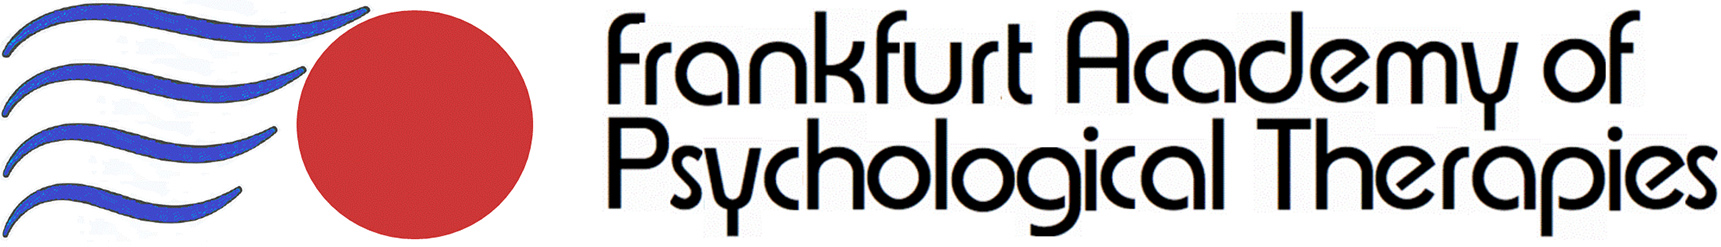 Frankfurt Academy of Psychological Therapies